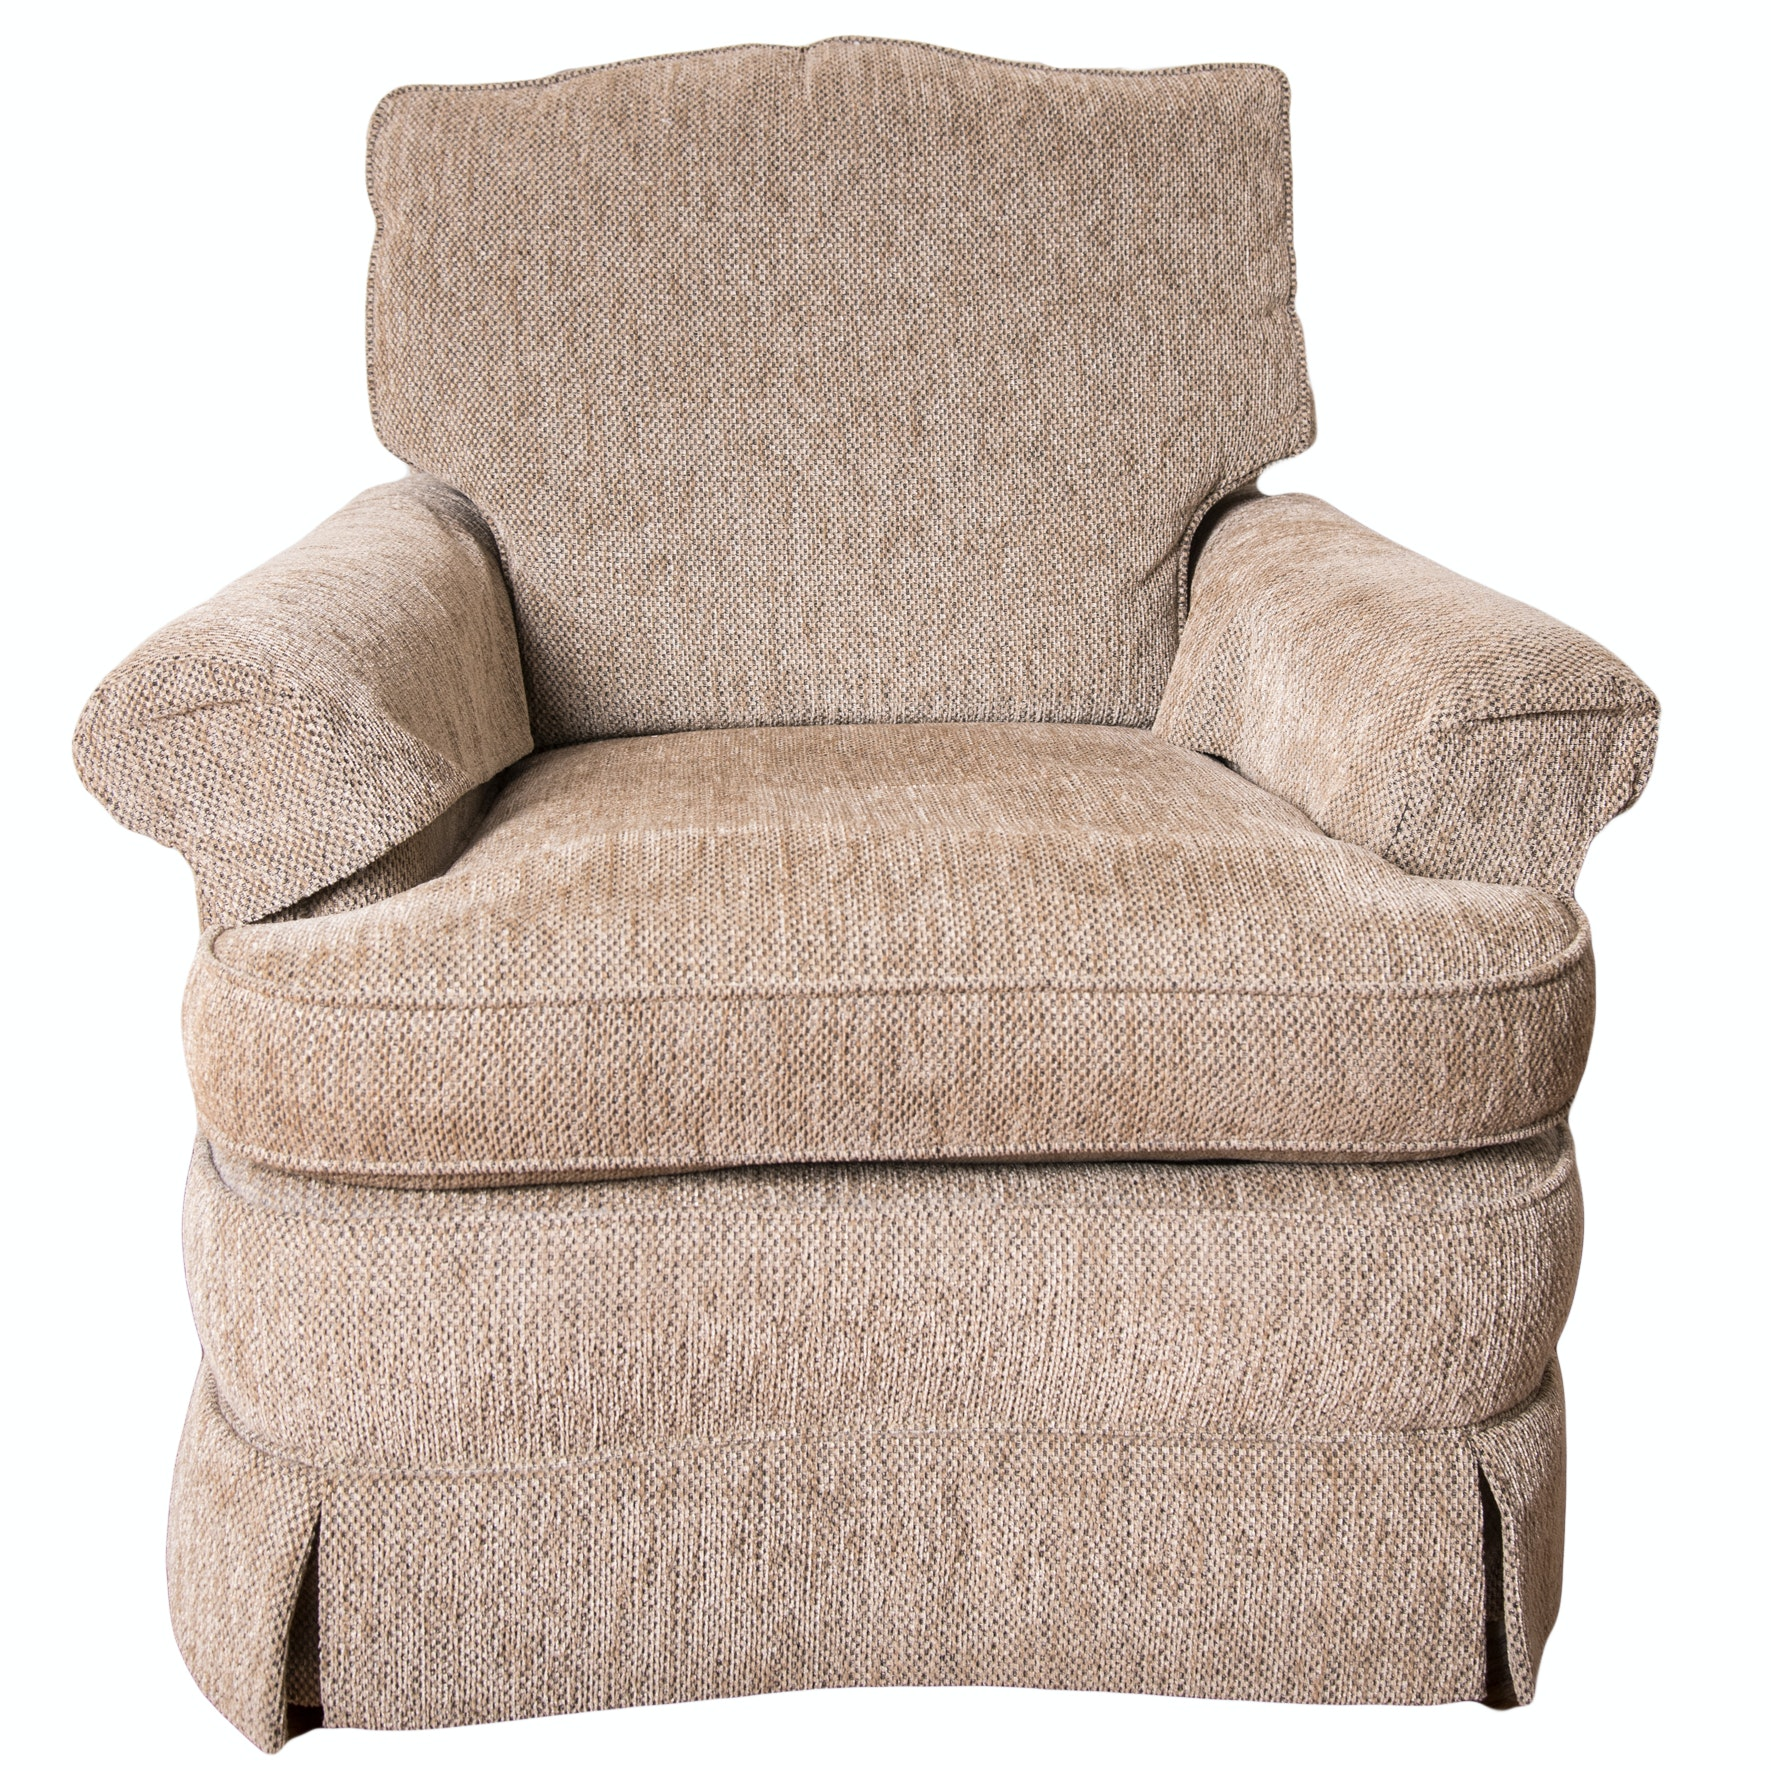 Swivel Rocker Armchair by Jessica Charles